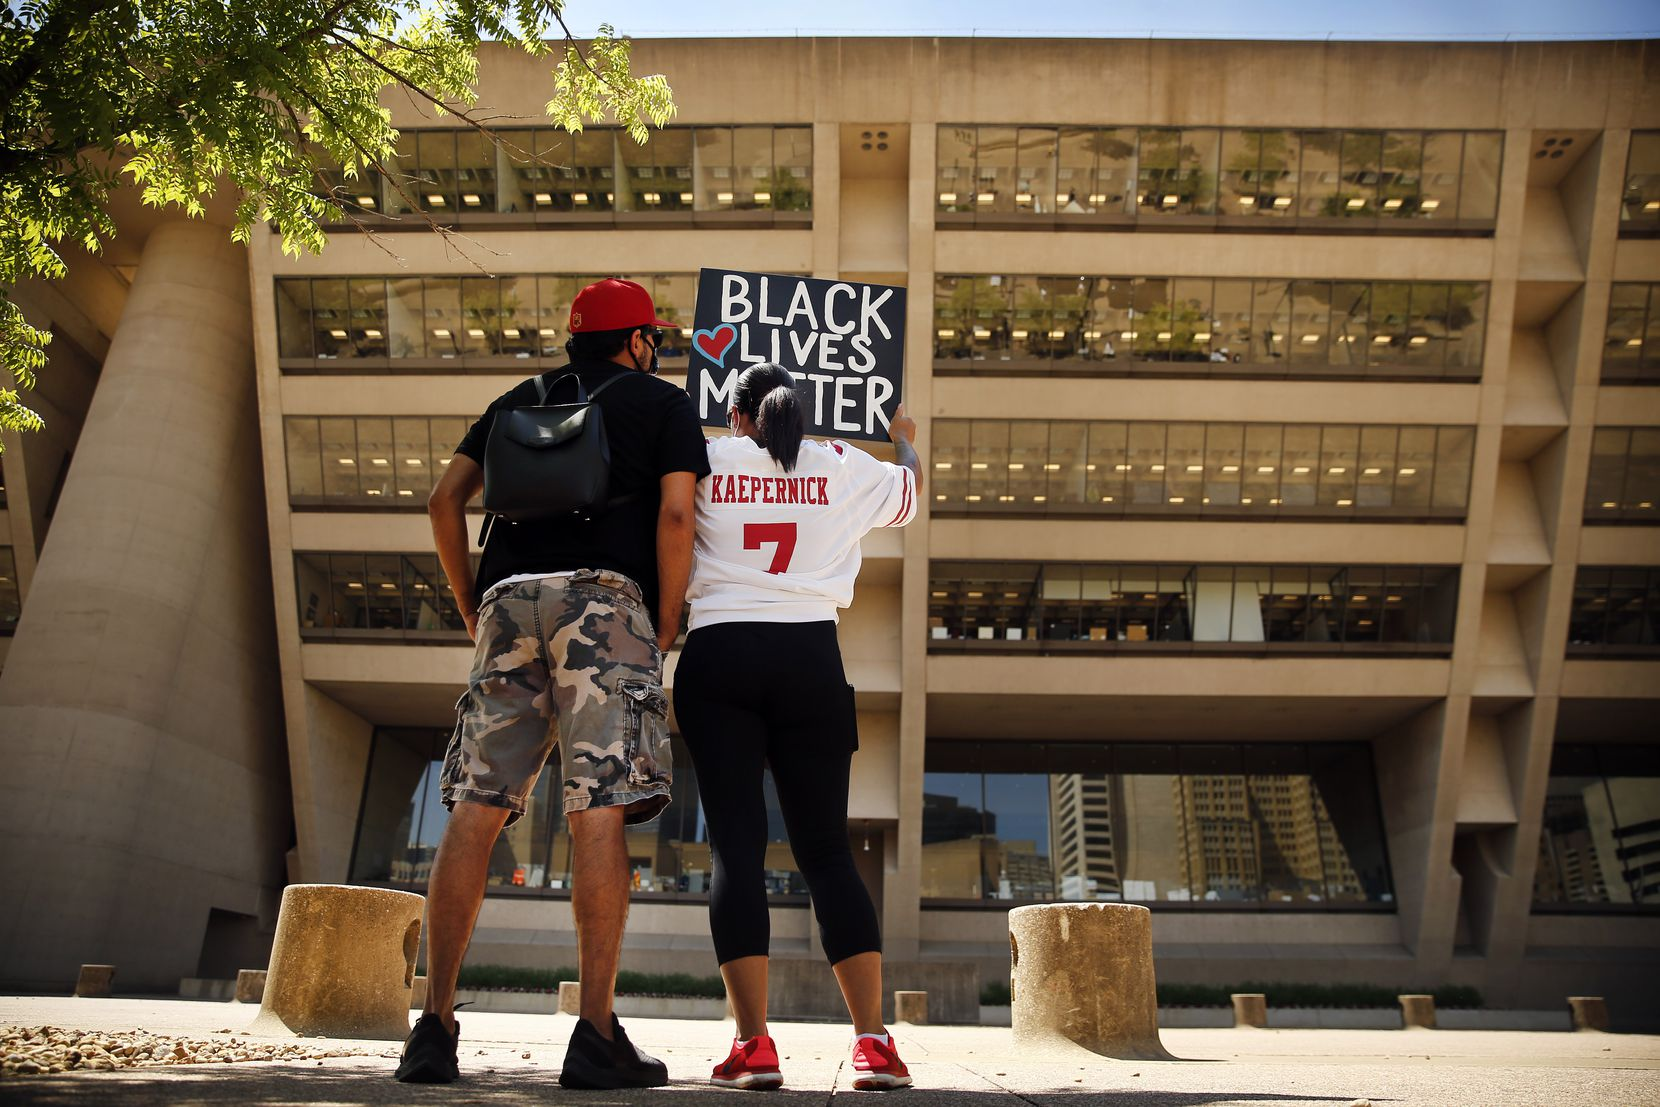 Protestors Xavier Reyes (left) and his girlfriend Aprille Peterson raise their Black Lives Matter painting toward Dallas City Hall during a Silent Protest and Mourning rally, Thursday, June 4, 2020. Aprille is wearing Xavier's Colin Kaepernick jersey, one he got before the kneeling protest and has worn ever since. No one spoke as they stood in solidarity with signs, protesting the in-custody death of George Floyd in Minneapolis.